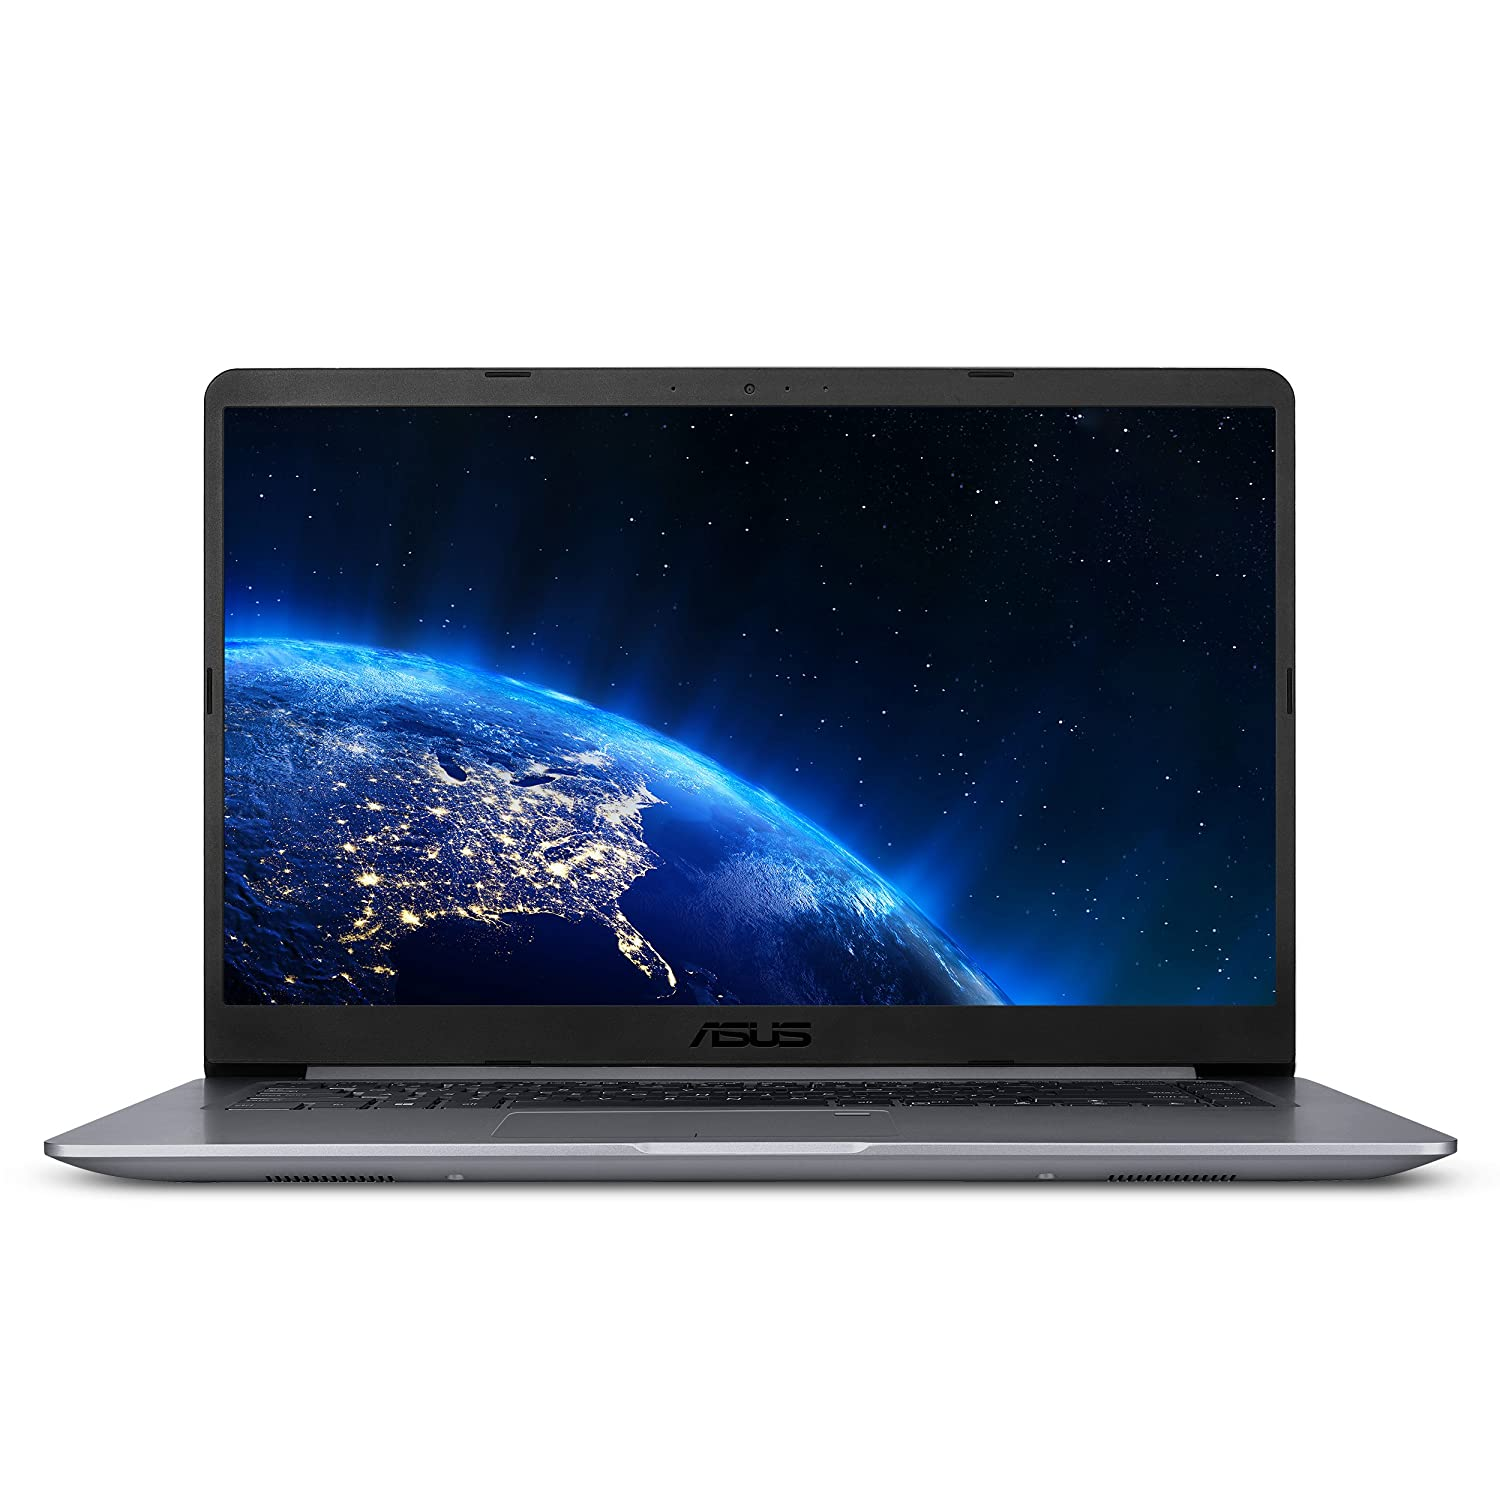 "Asus VivoBook S510UA Grey Metal, 15.6 "", FHD, 1920 x 1080 pixels, Matt, Intel Core i3, i3-8130U, 4 GB, DDR4, SSD 256 GB, Intel HD, Endless OS, 802.11 ac, Bluetooth version 4.1, Keyboard language English, Russian, Battery warranty 12 month(s)"